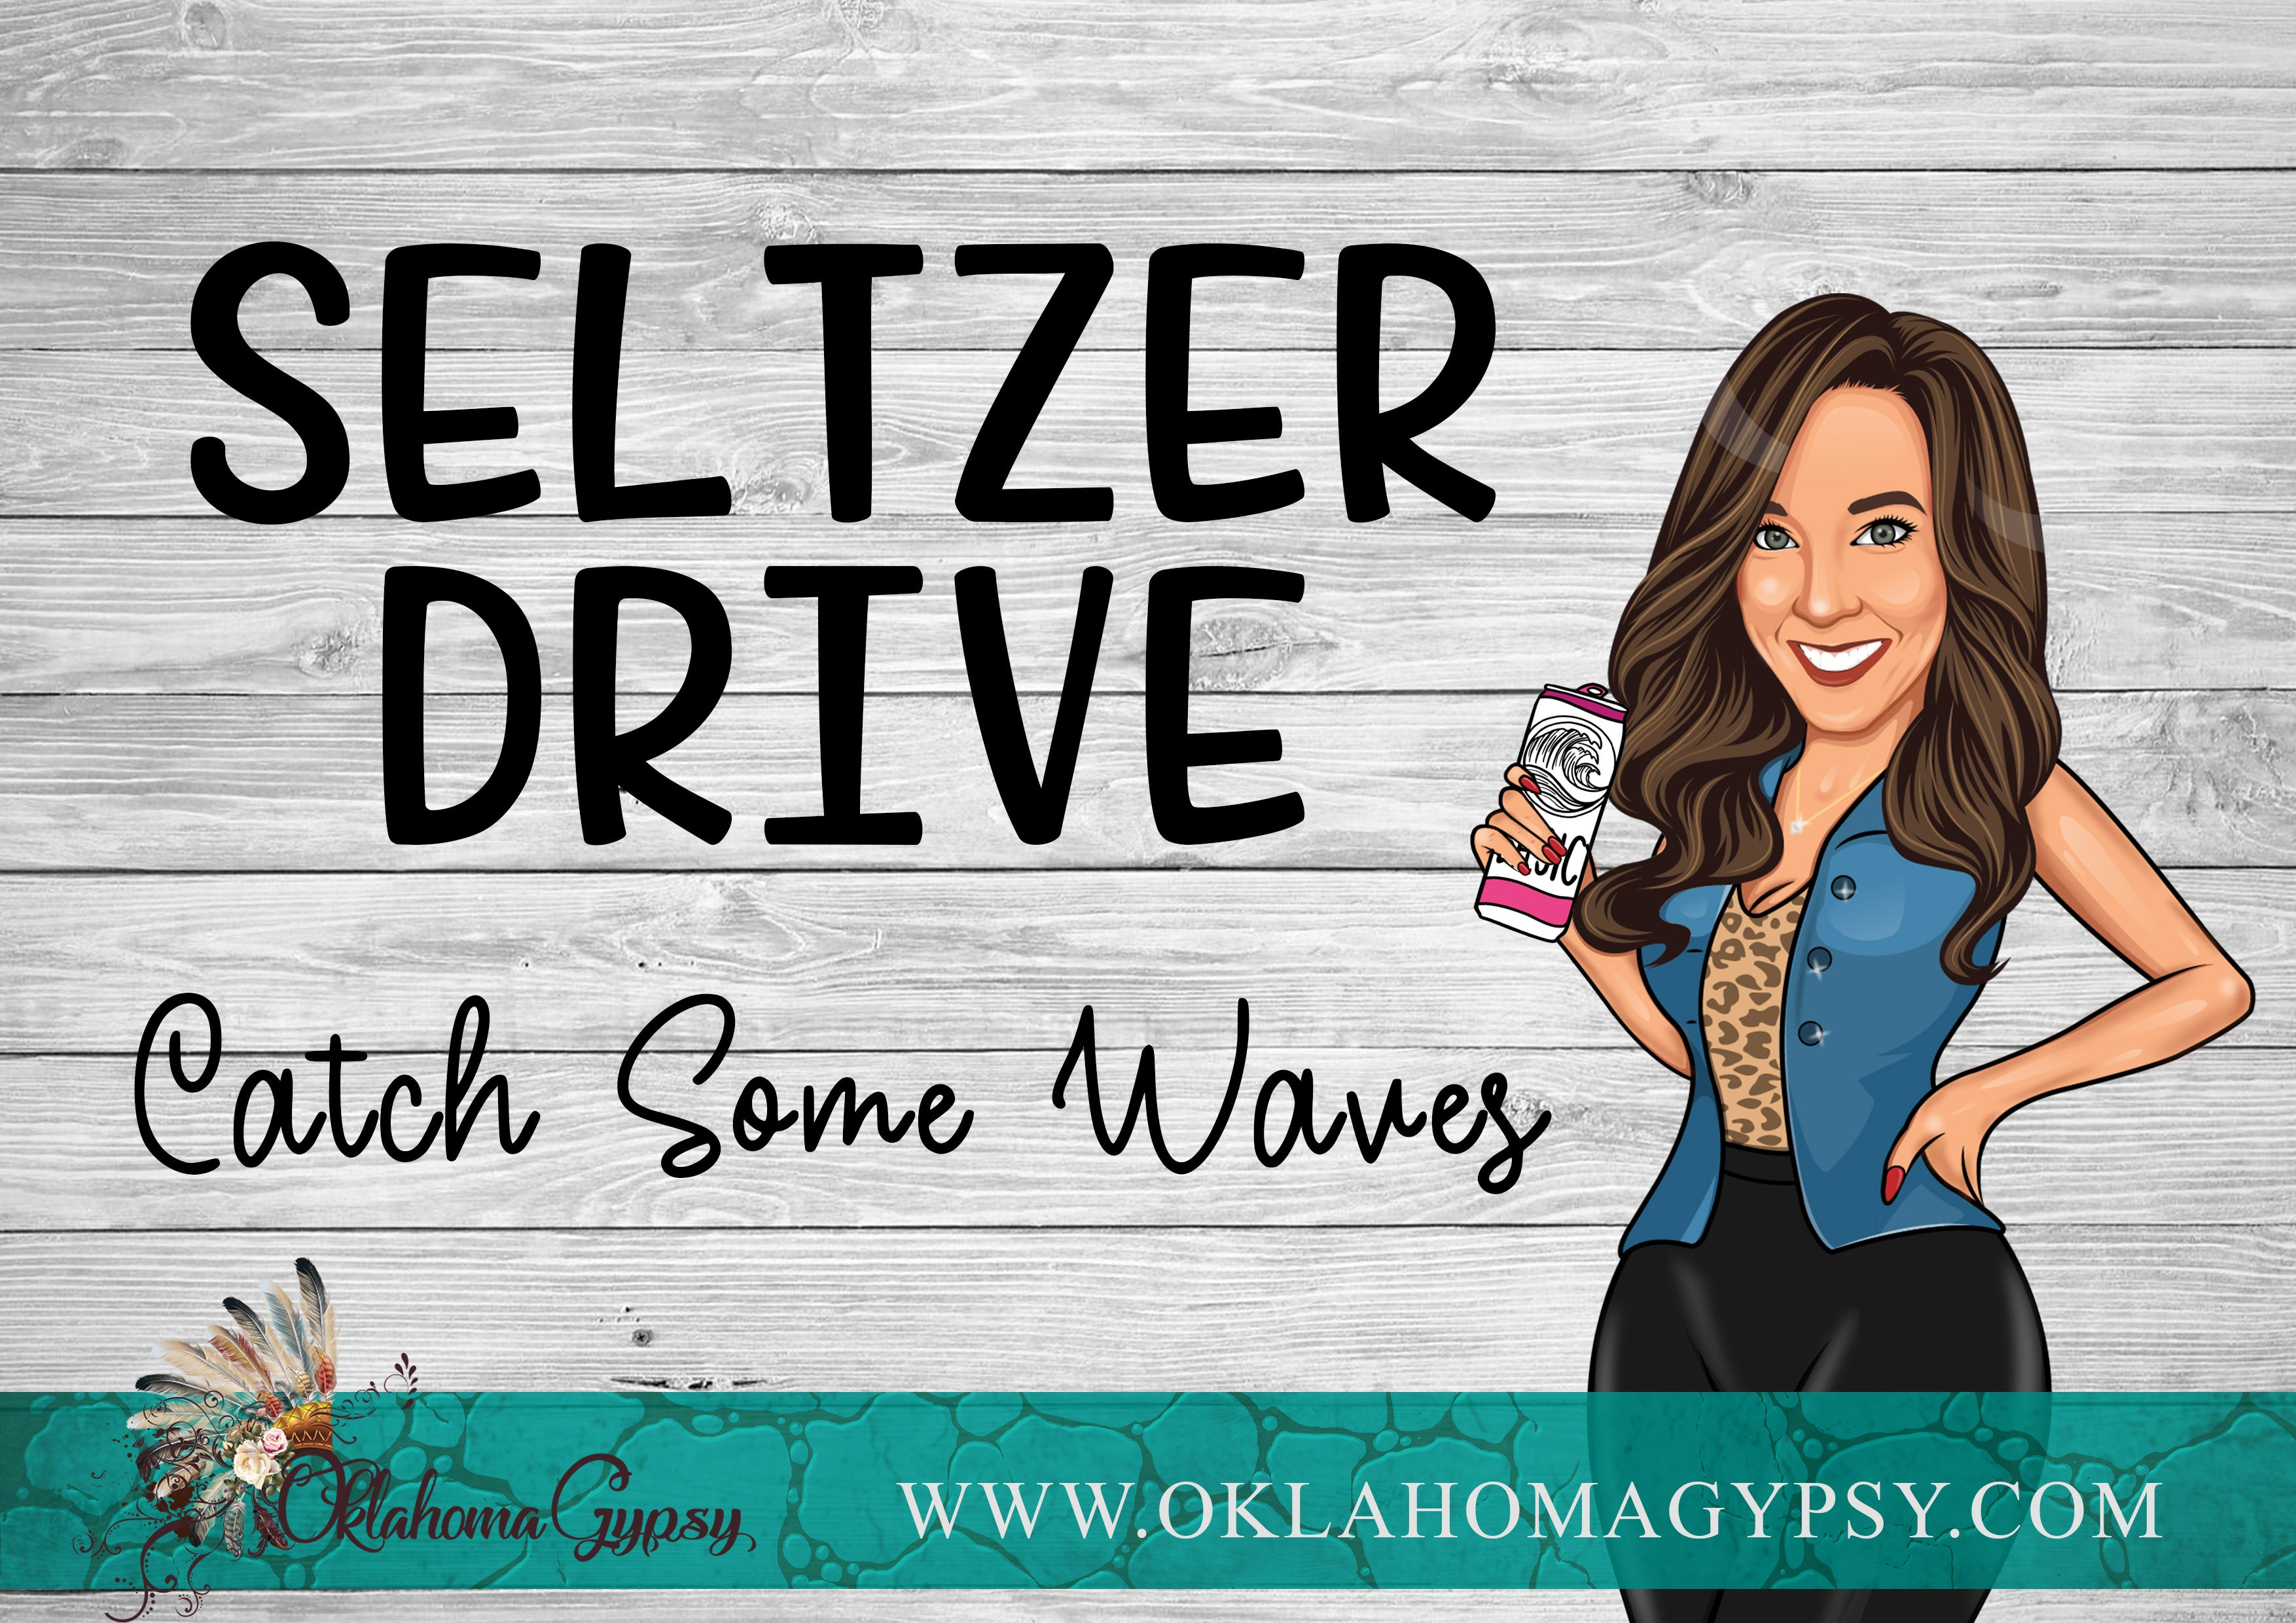 The Seltzer Drive